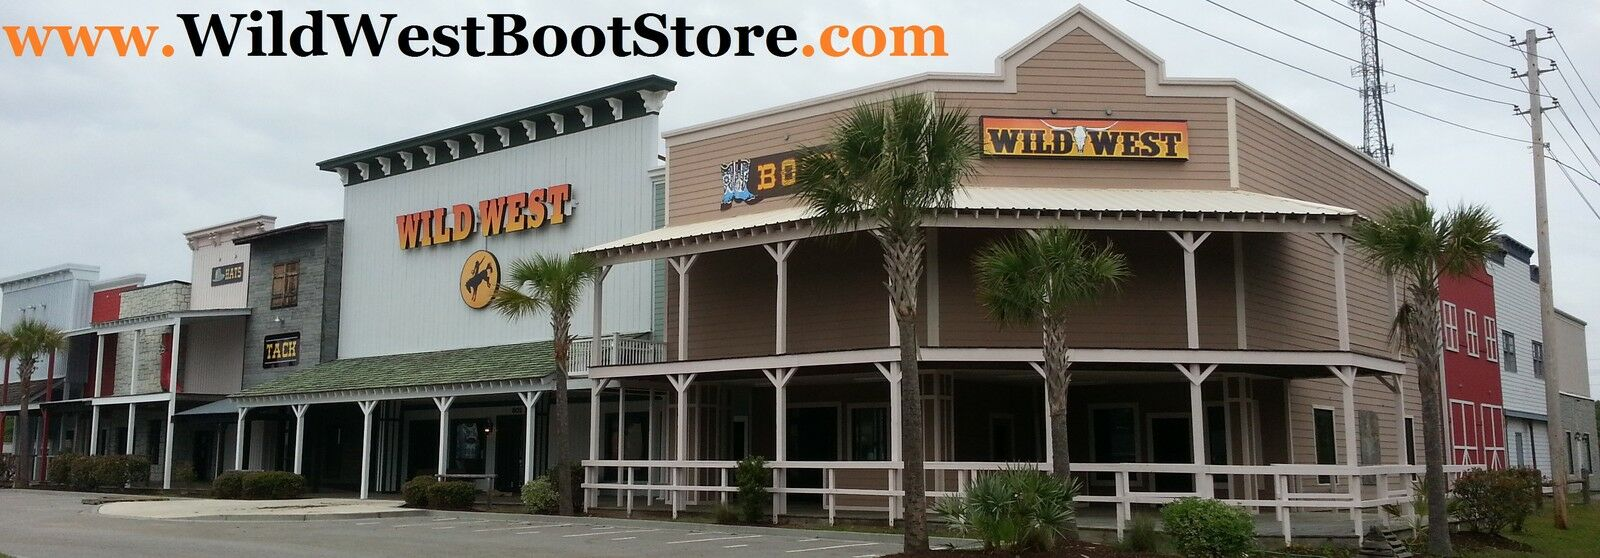 wildwestbootstore